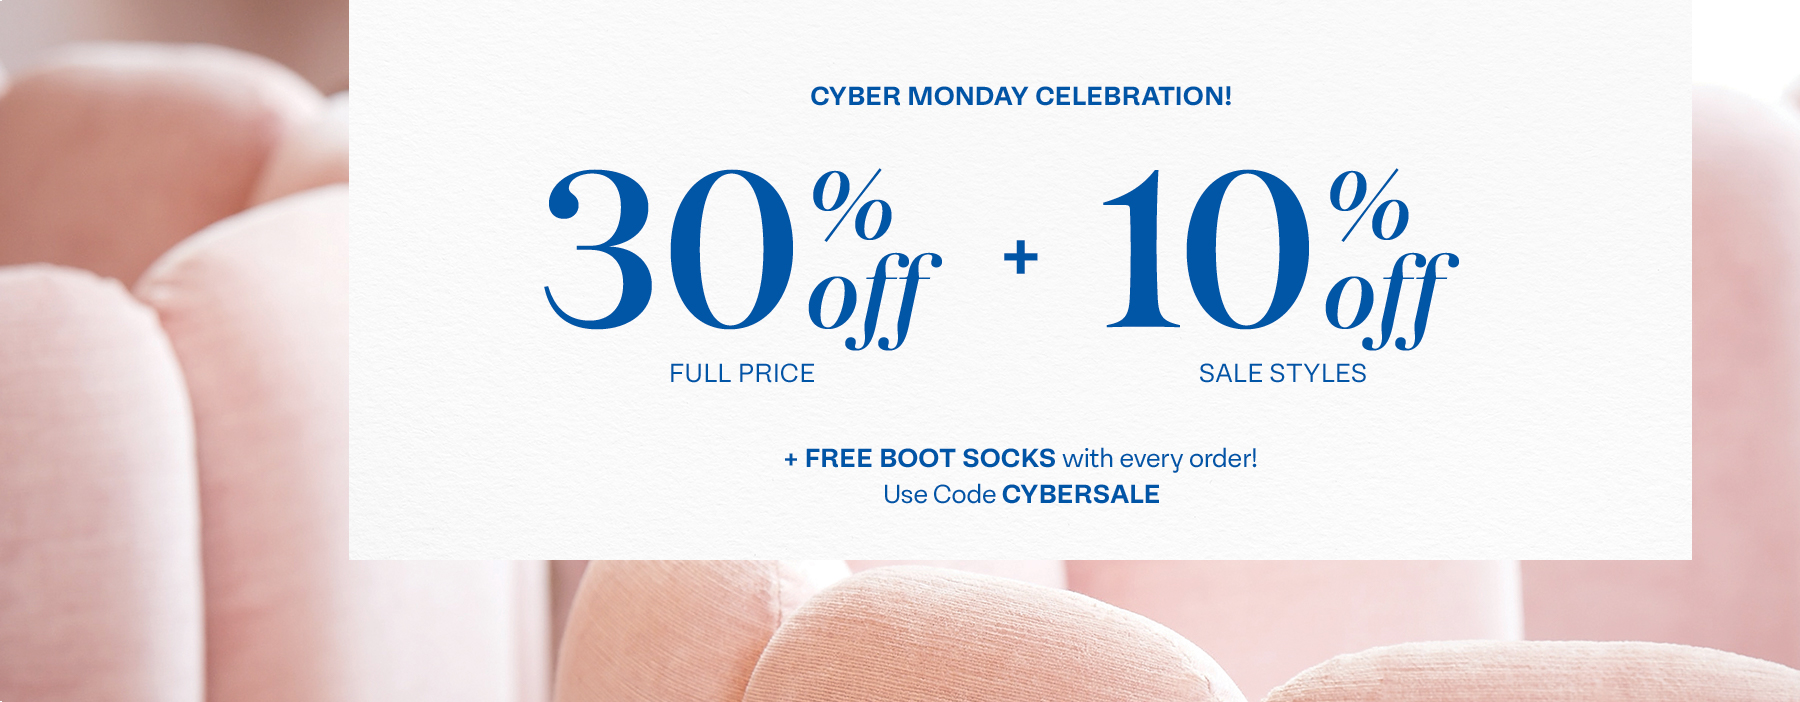 CYBER MONDAY CELEBRATION! 30% off Full Price and 10% off Sale Styles, and Free Boot Socks with every order! Use code cybersale